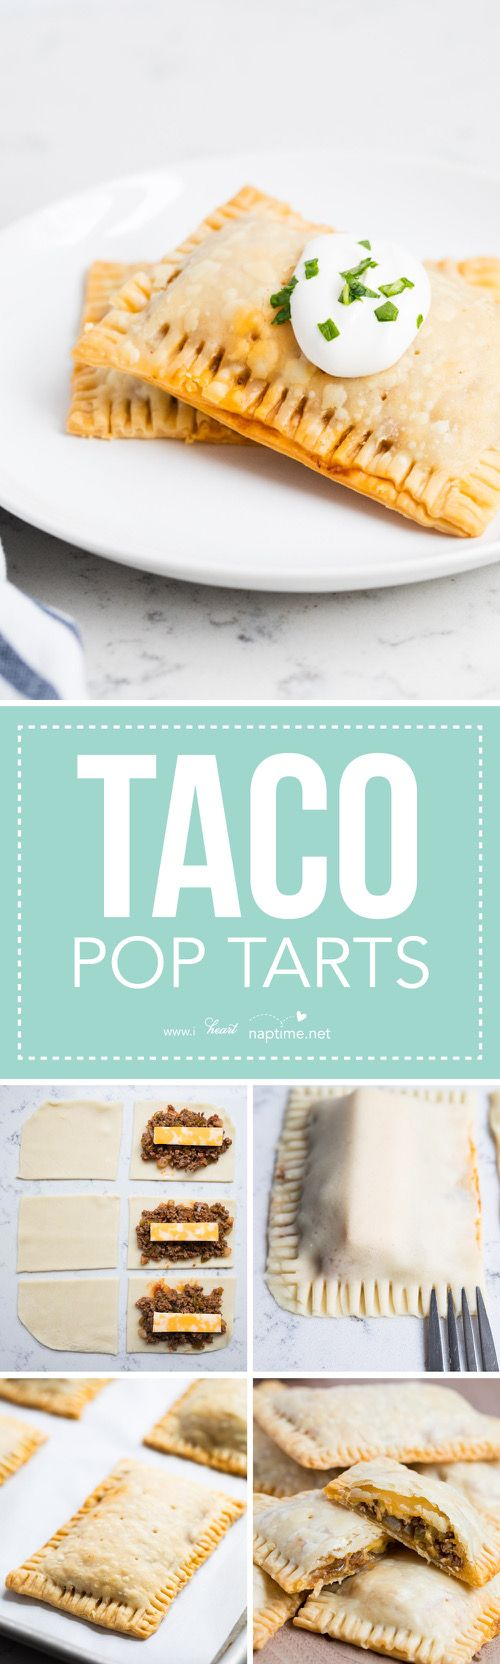 Taco Pop Tarts …AKA mini taco pies are one of my families favorite! The flaky crust, seasoned taco meat, colby-jack cheese and fresh salsa give these such amazing flavor! @oldelpaso #freshestbloggers #partner (Vegan Mexican Ground Turkey)